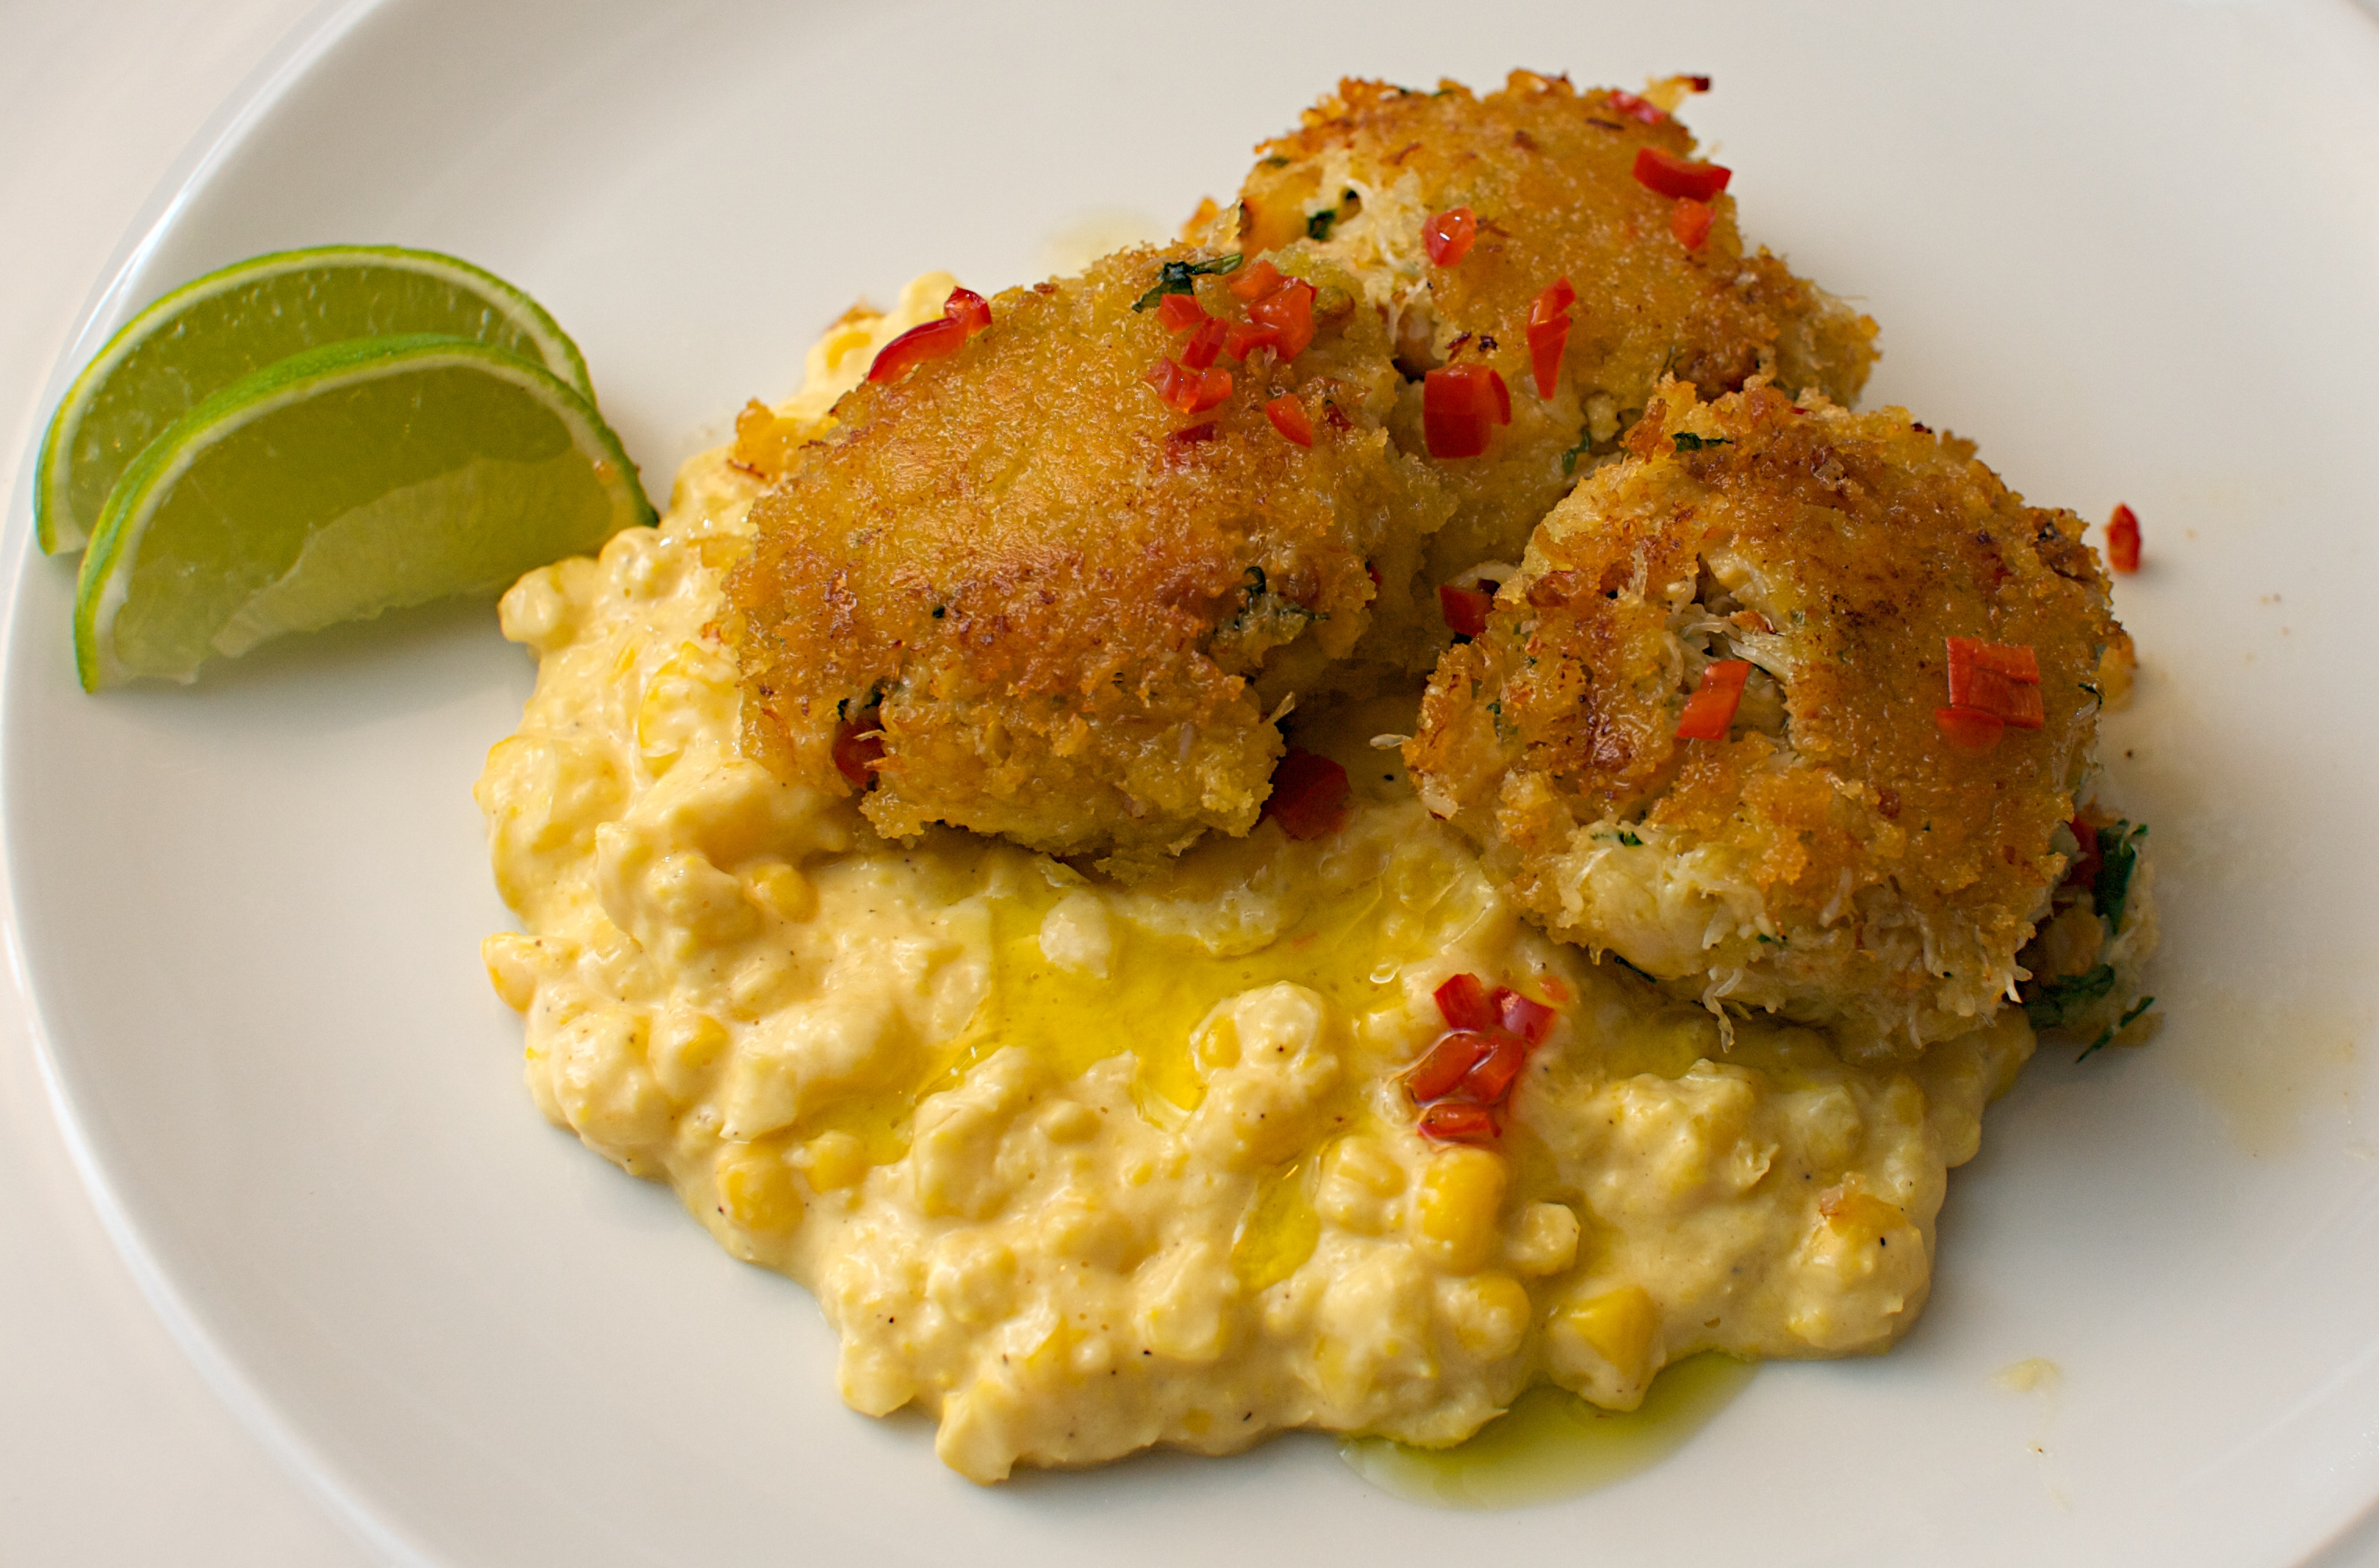 Side Dishes To Serve With Crab Cakes